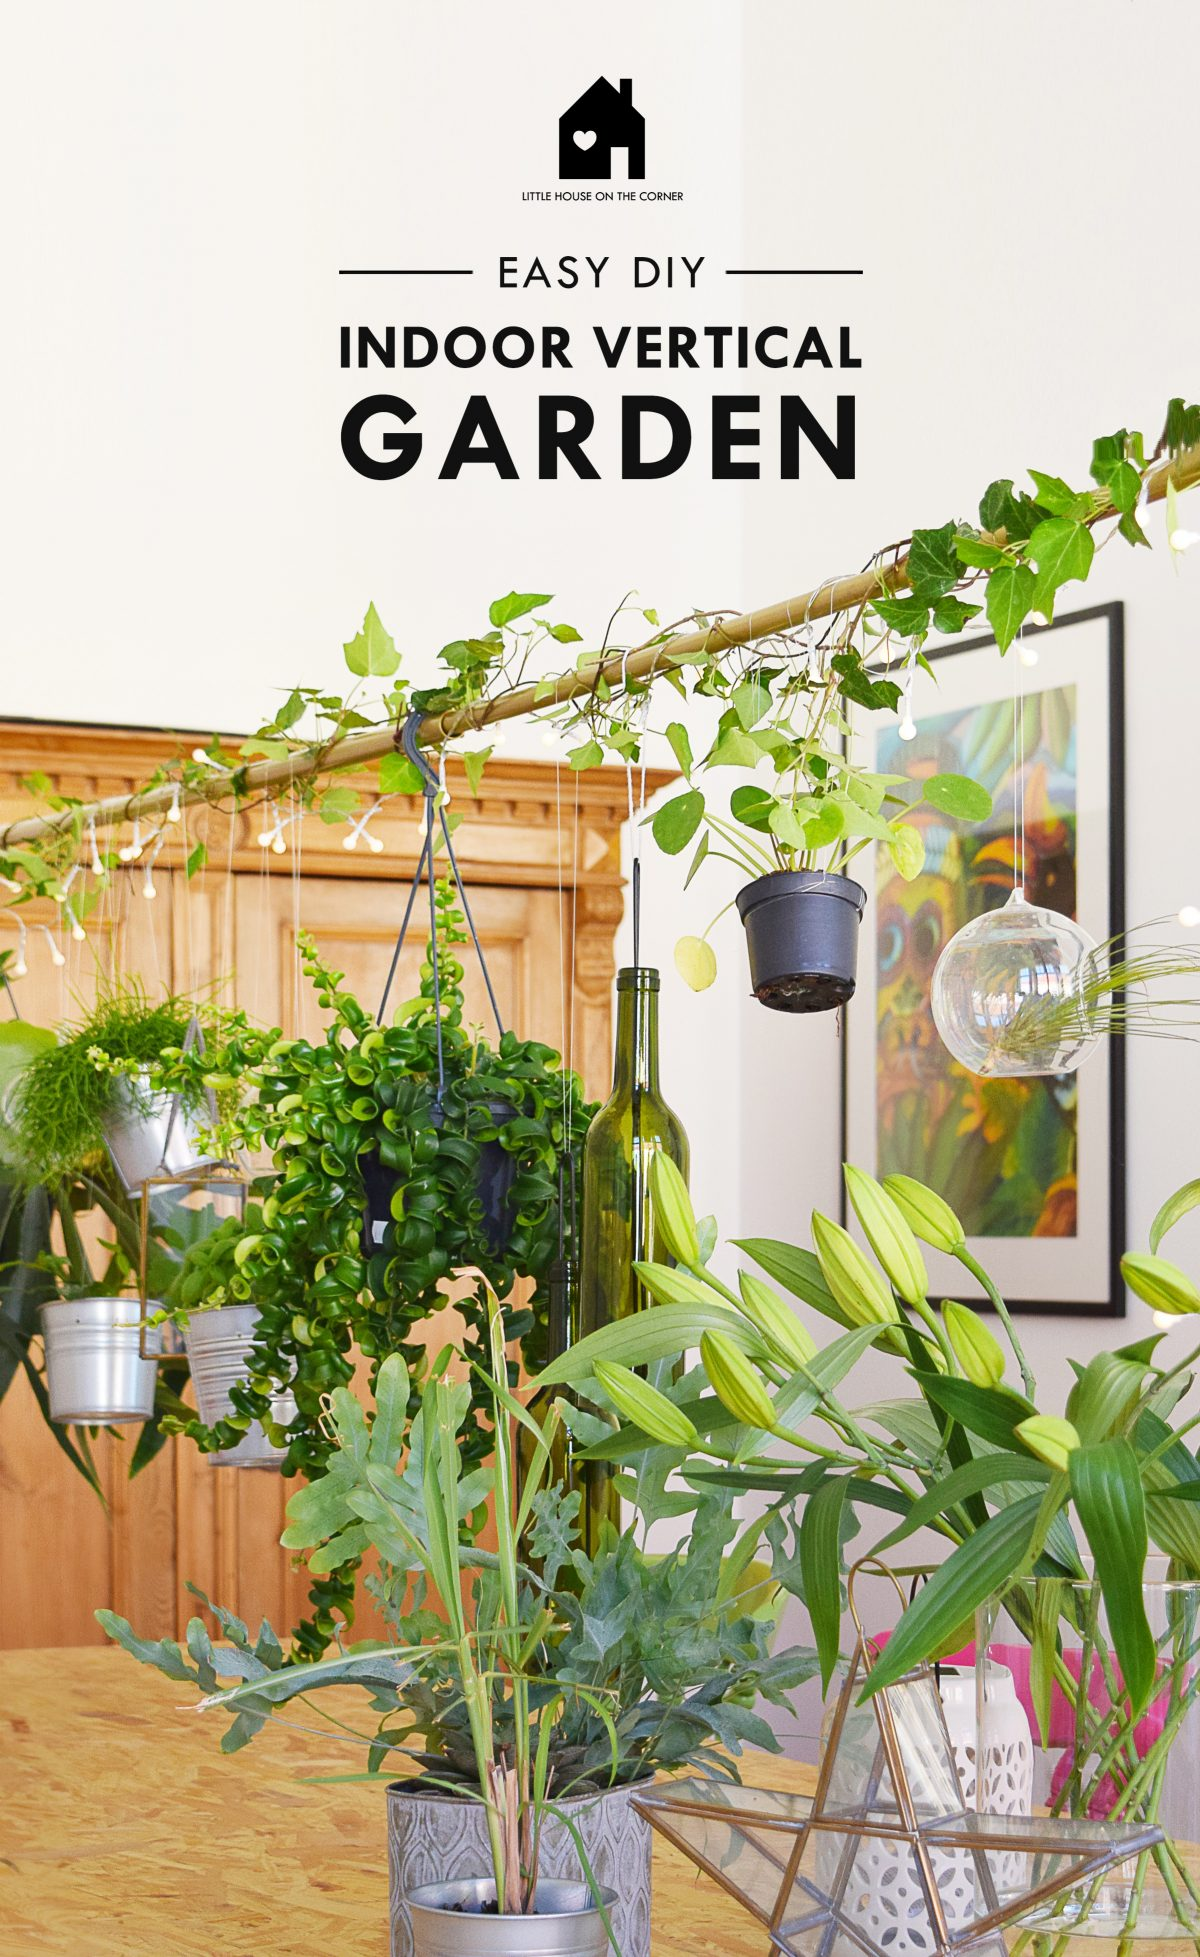 DIY Indoor Vertical Garden | Little House On The Corner